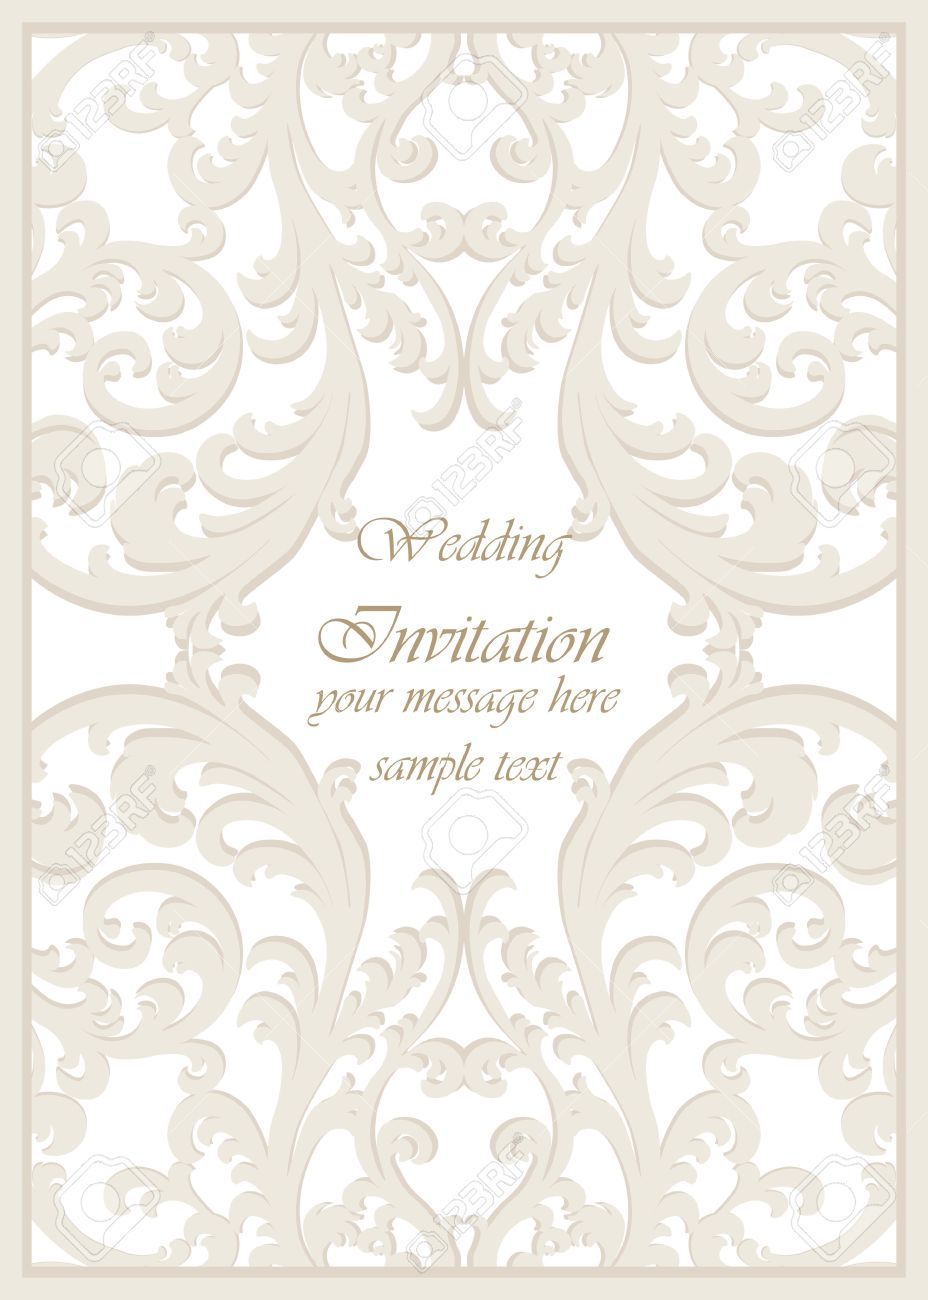 Vector vintage classic wedding invitation card imperial style vector vector vintage classic wedding invitation card imperial style floral ornament background for design wedding invitations greeting cards stopboris Choice Image